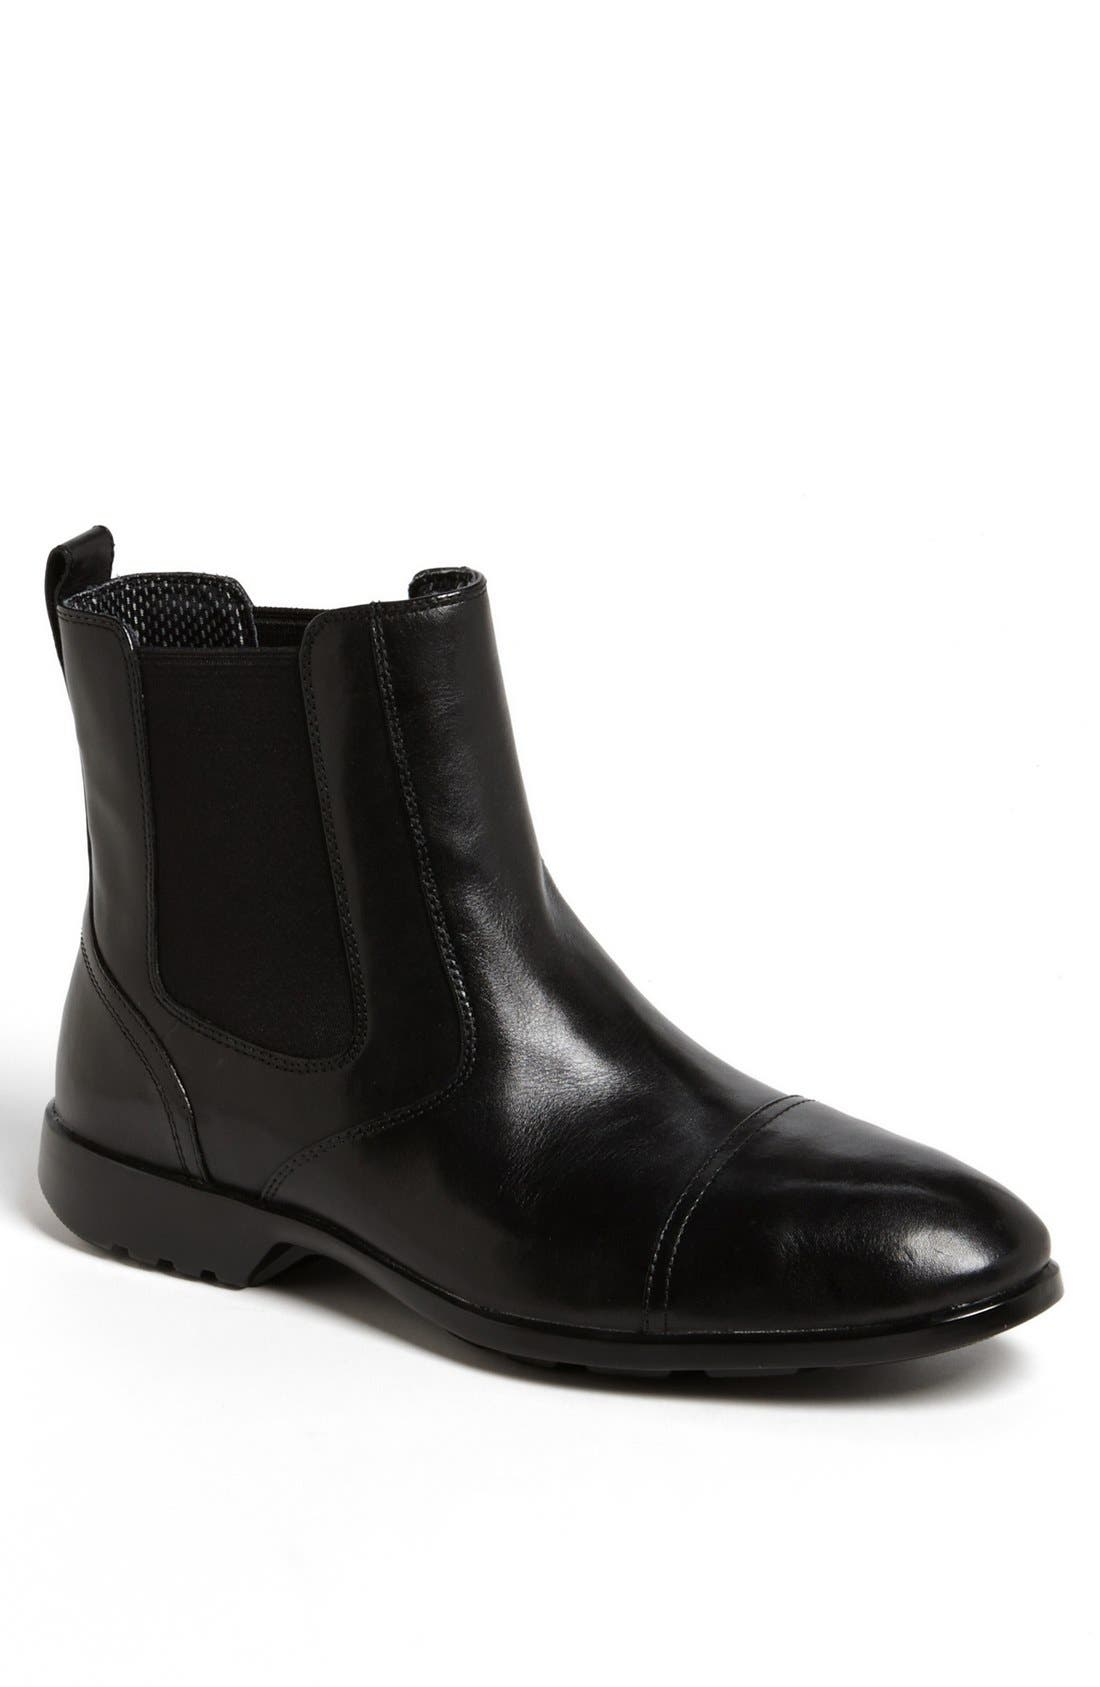 Main Image - Rockport 'Total Motion' Chelsea Boot